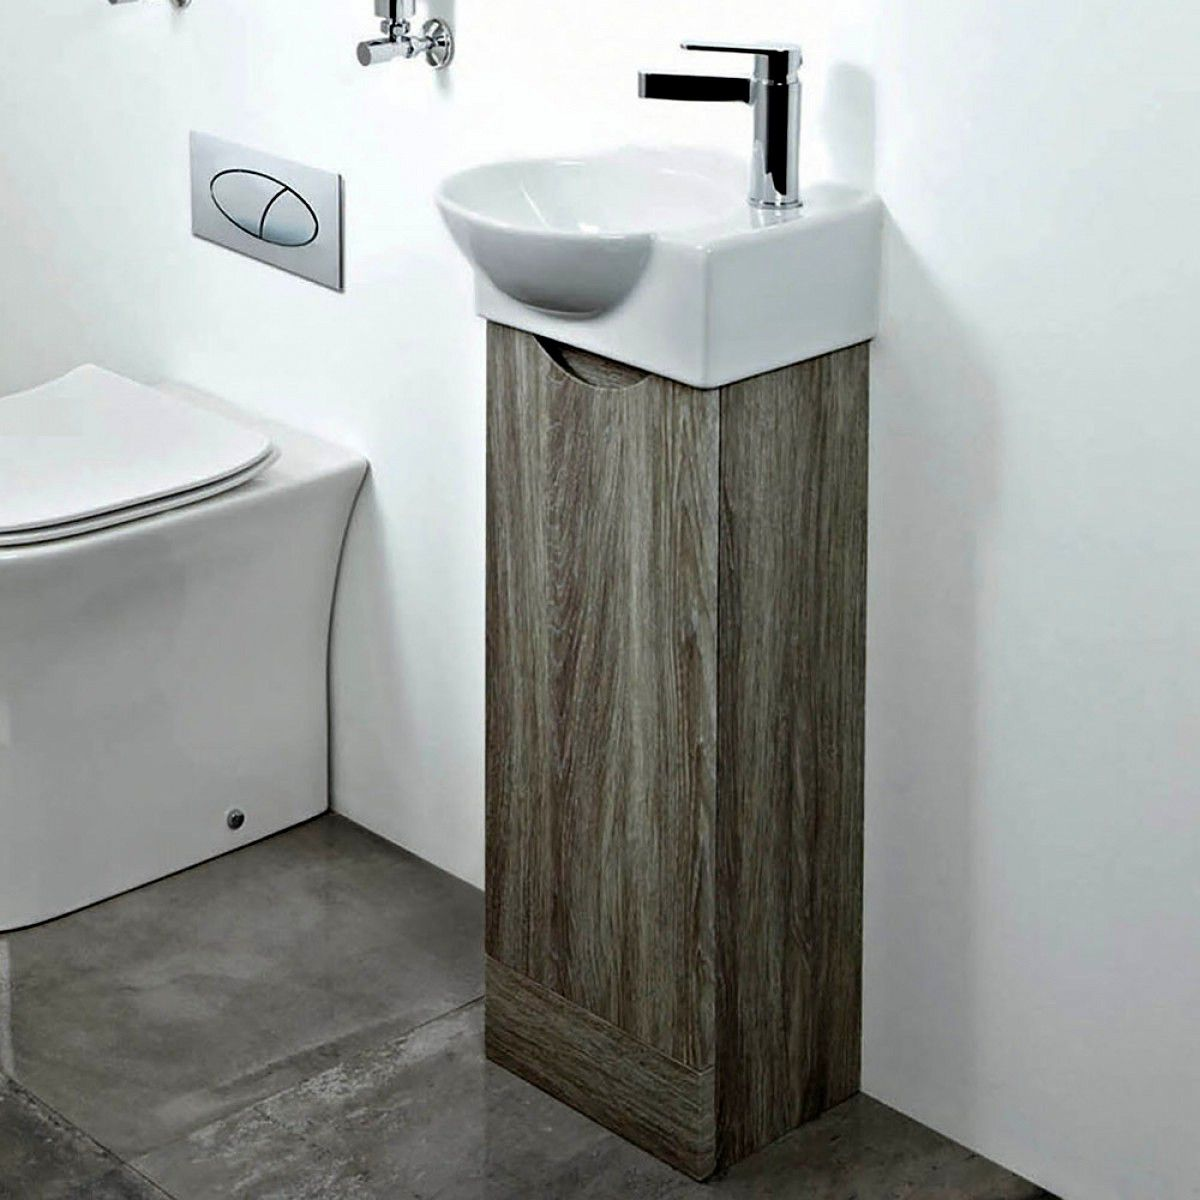 A Vanity Unit for a Modern and Well-Equipped Bathroom